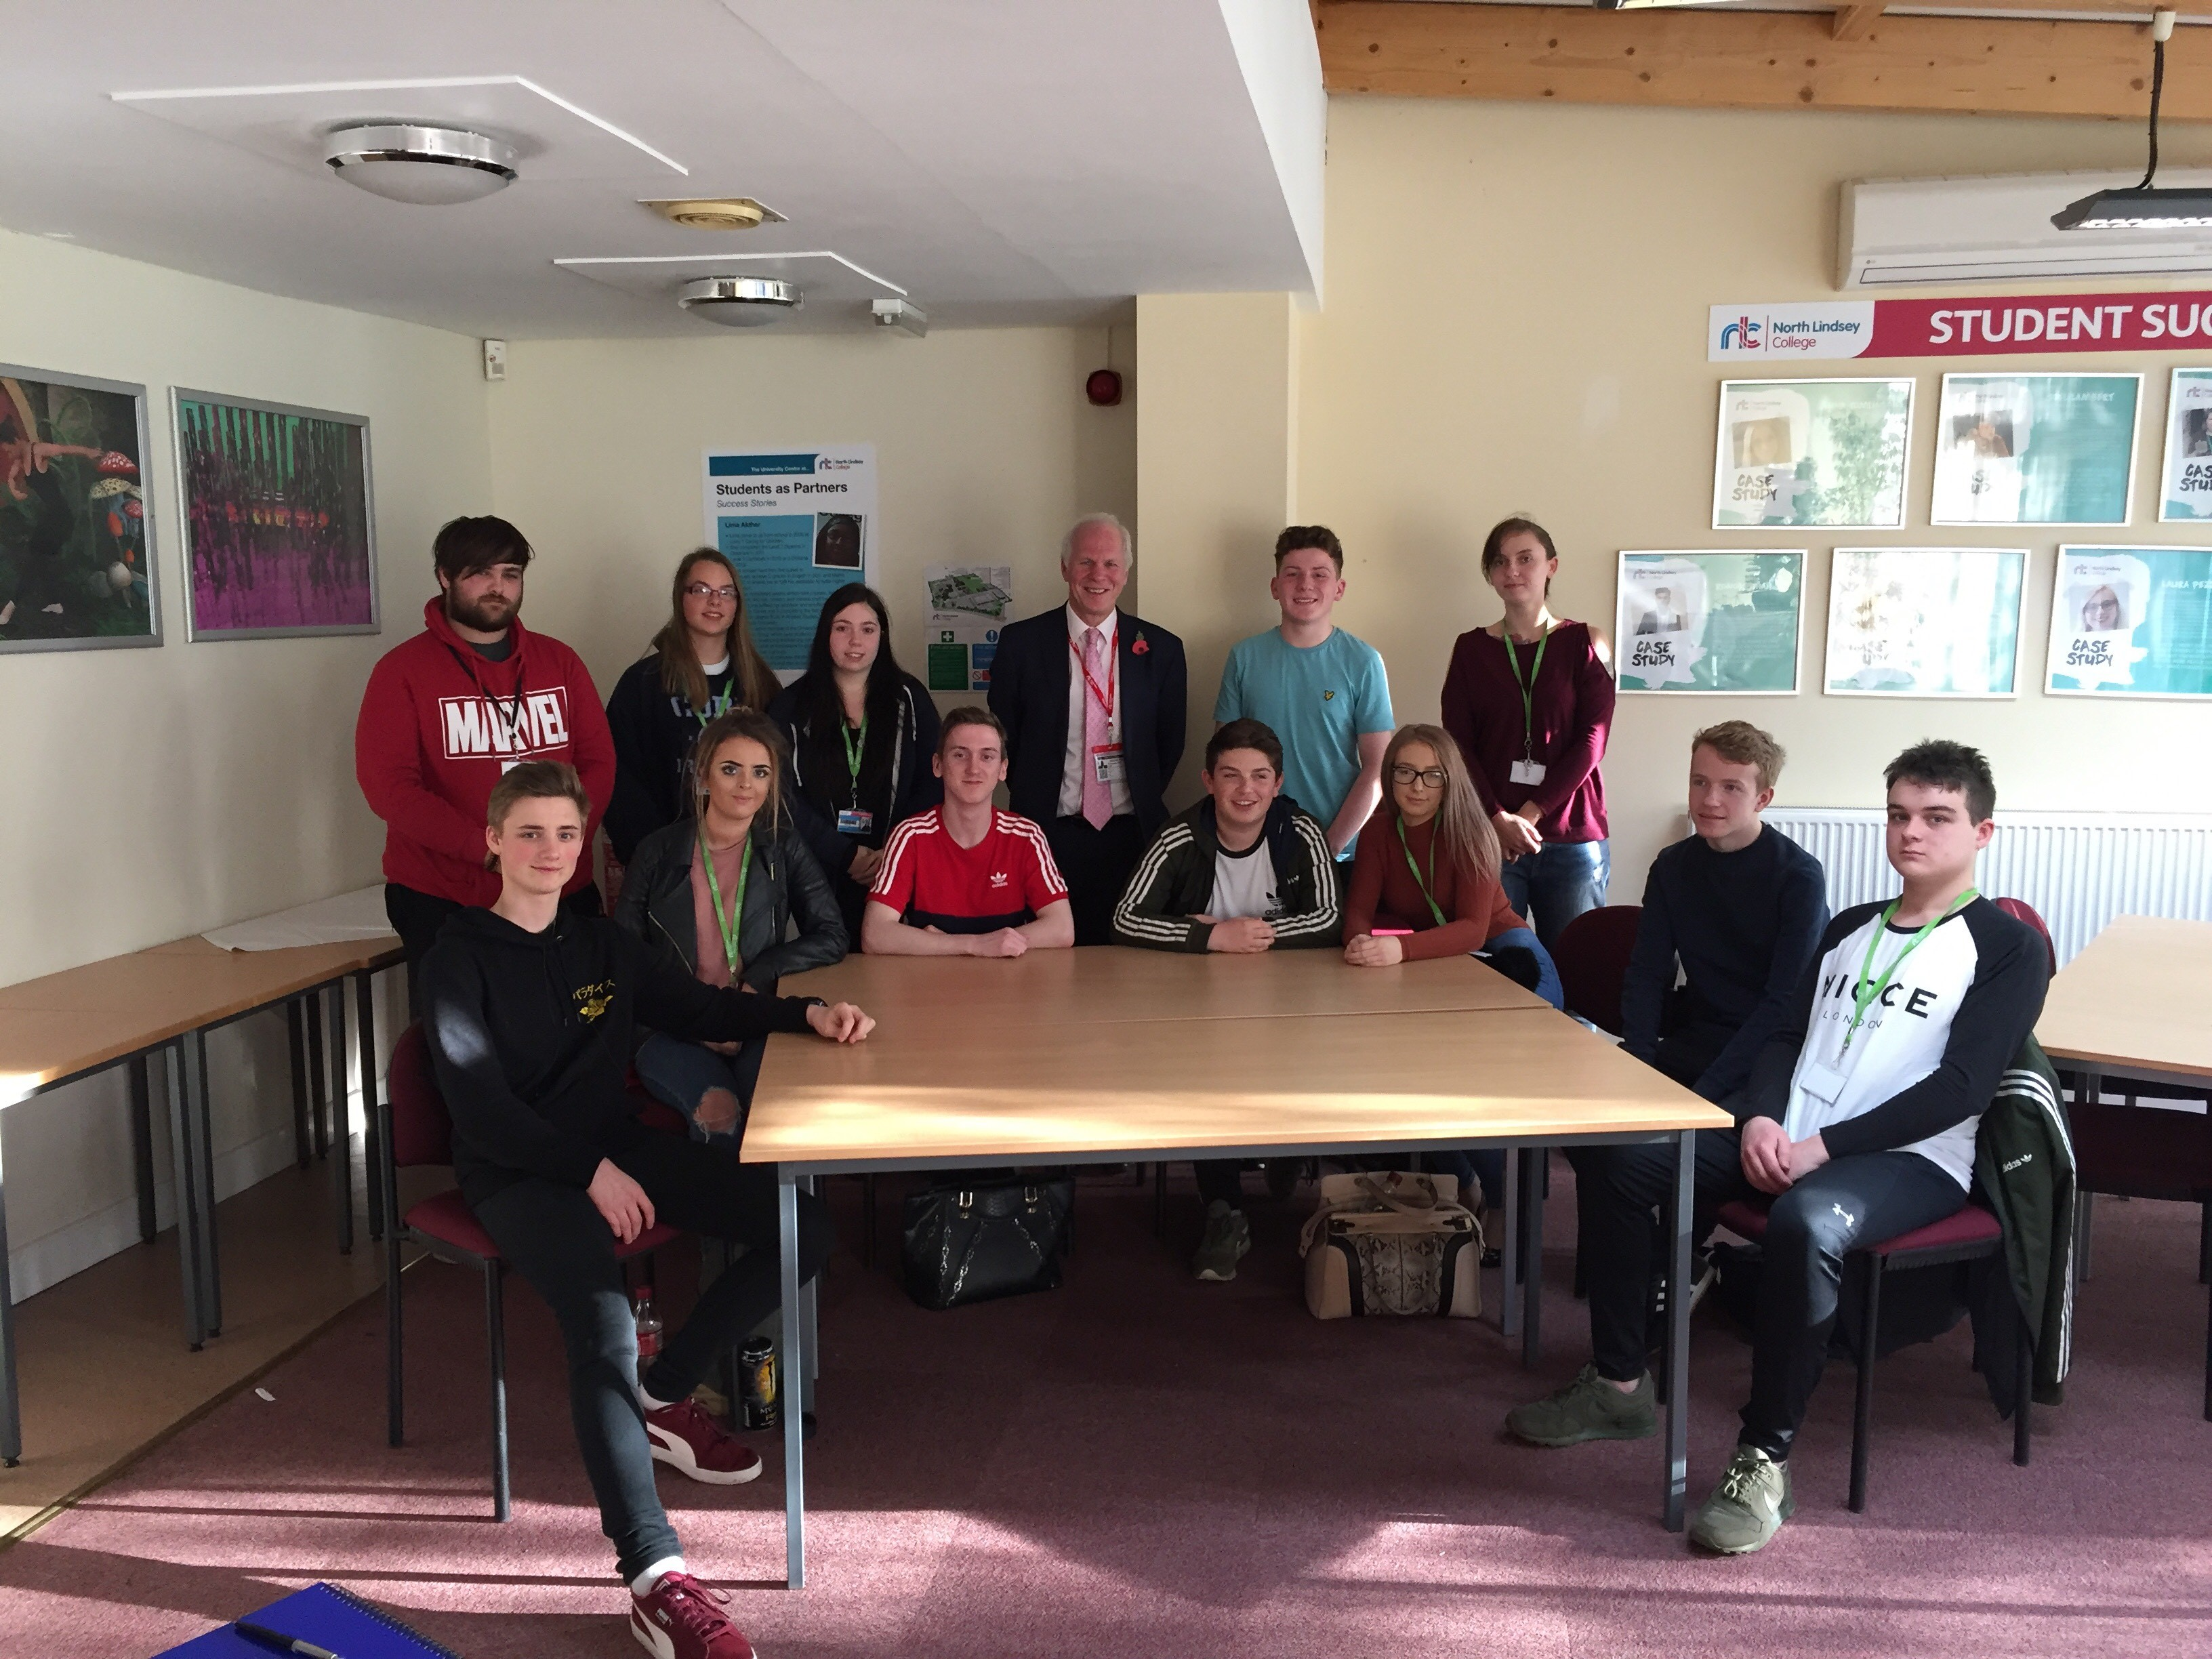 North_Lindsey_College_Students_with_Nic_(November_2017)..jpg